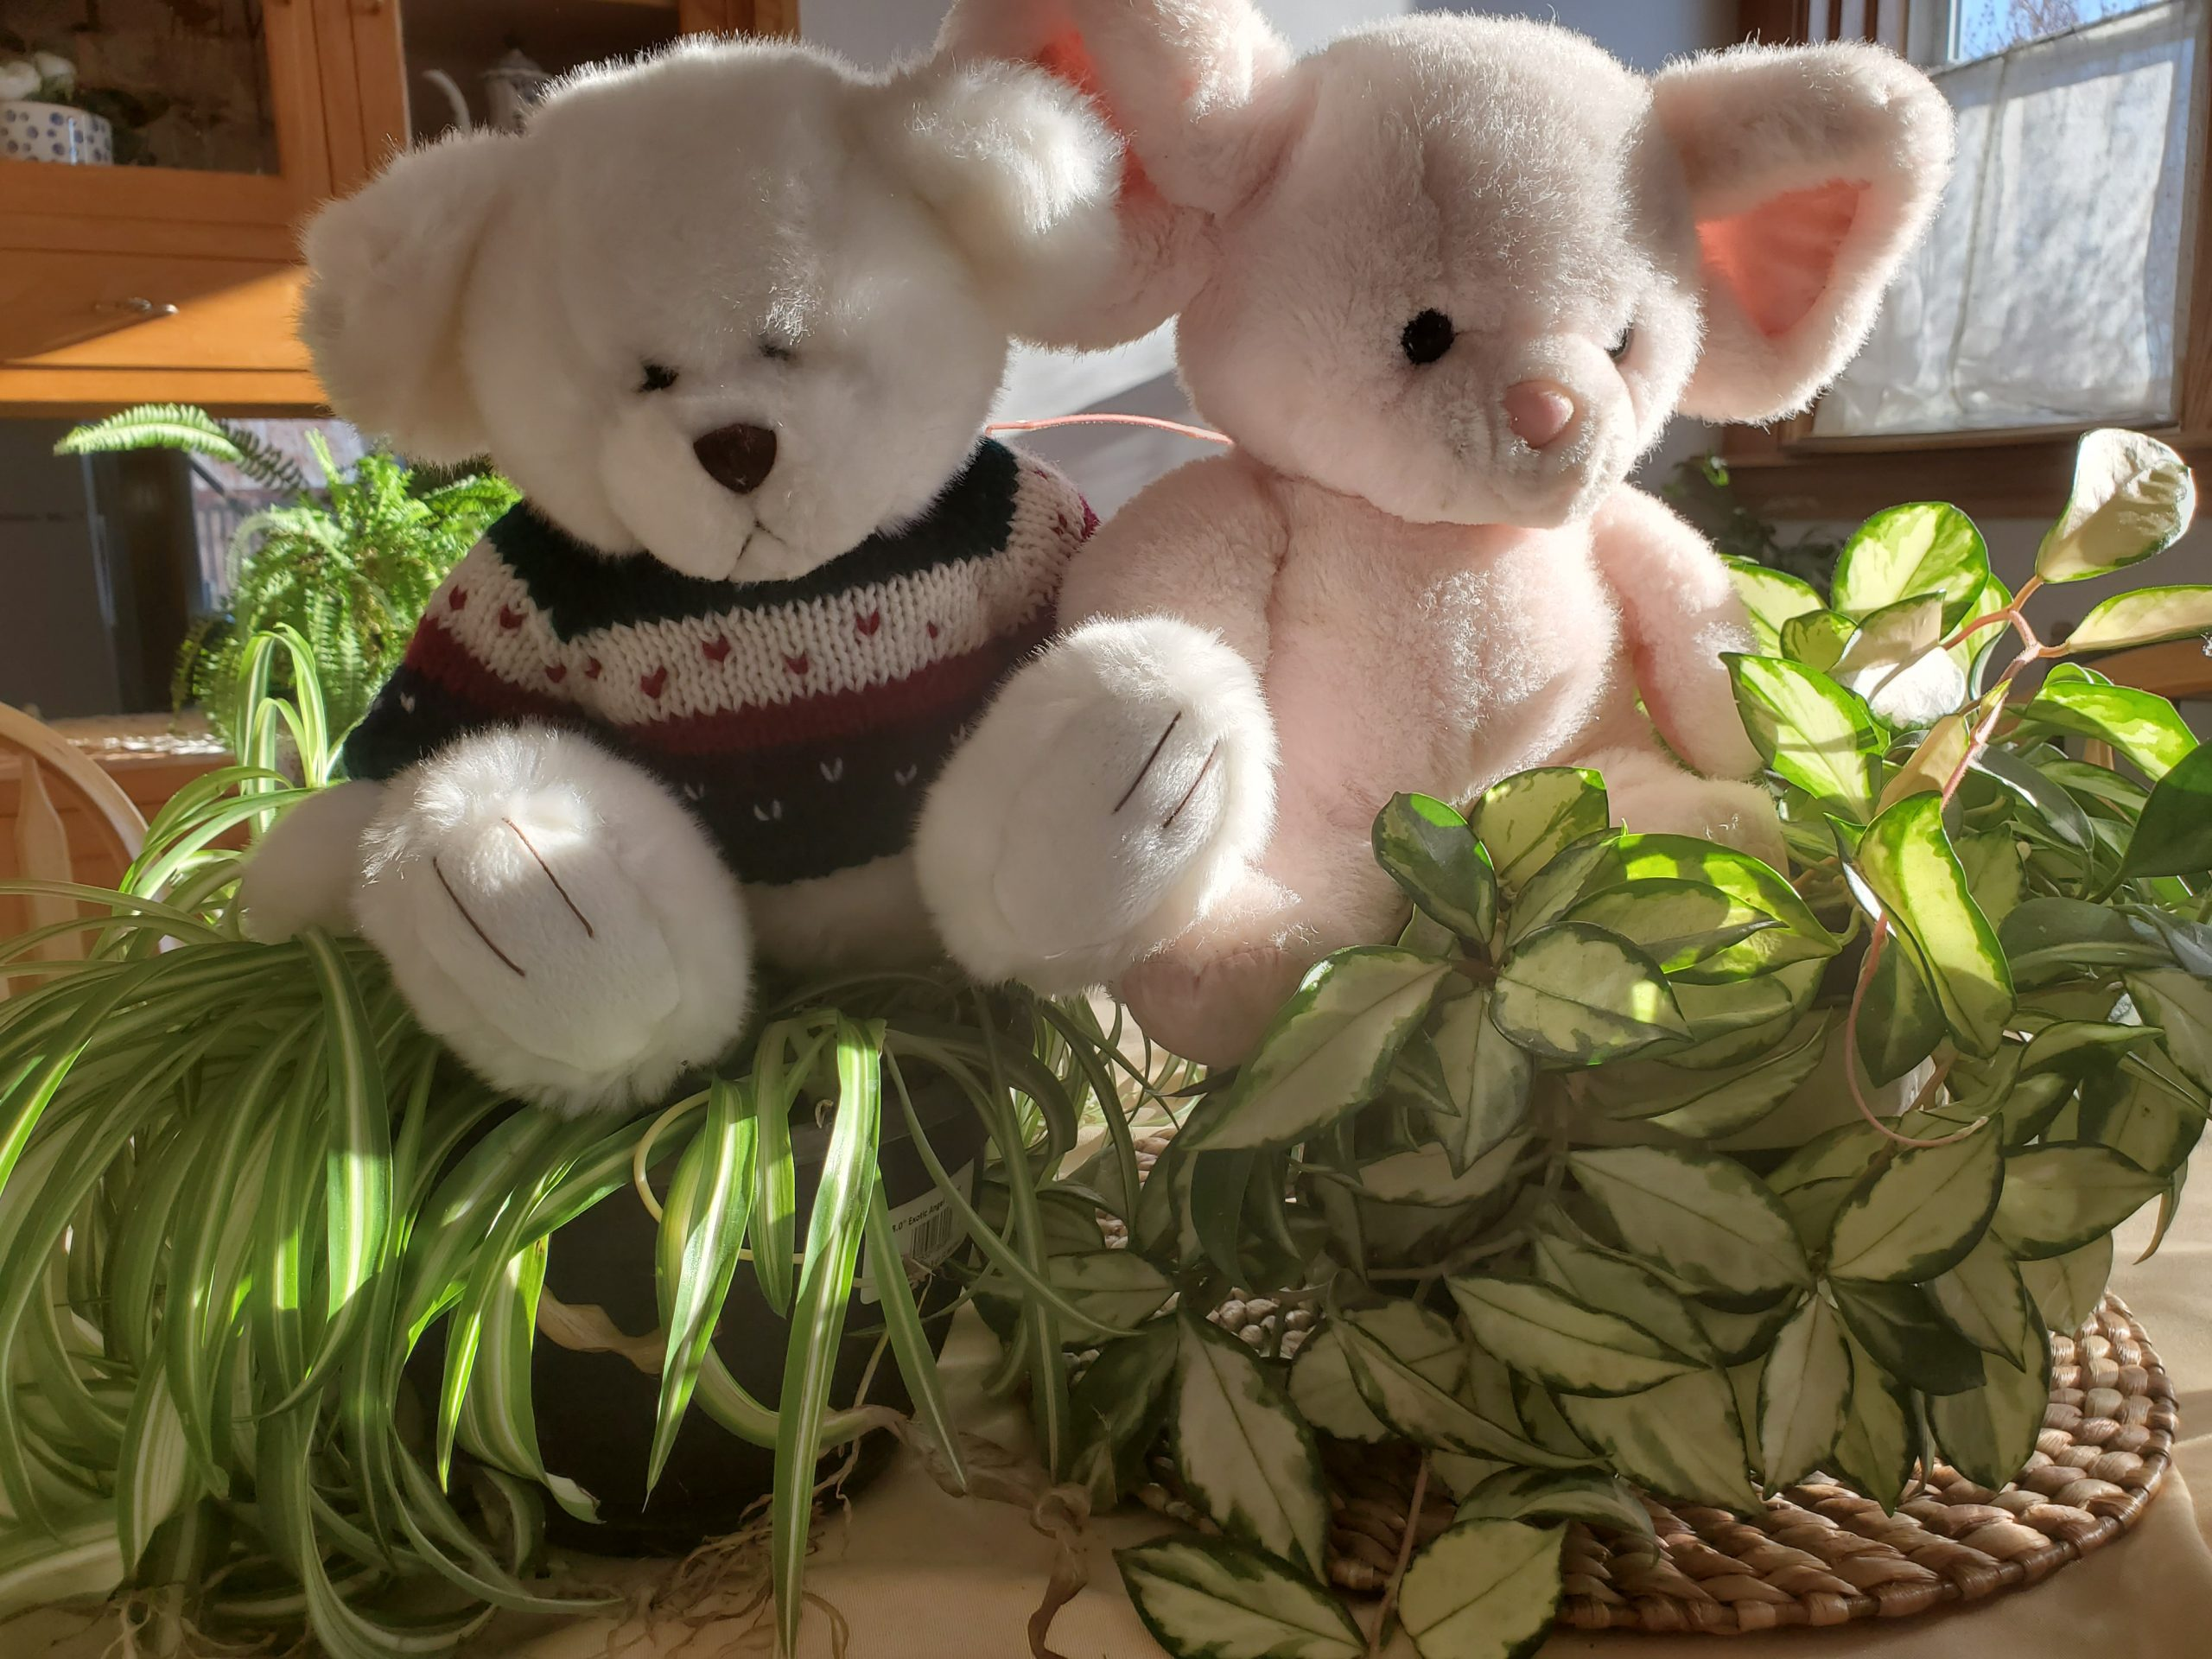 Two stuffed bears sitting on a pile of Palms and other leaves